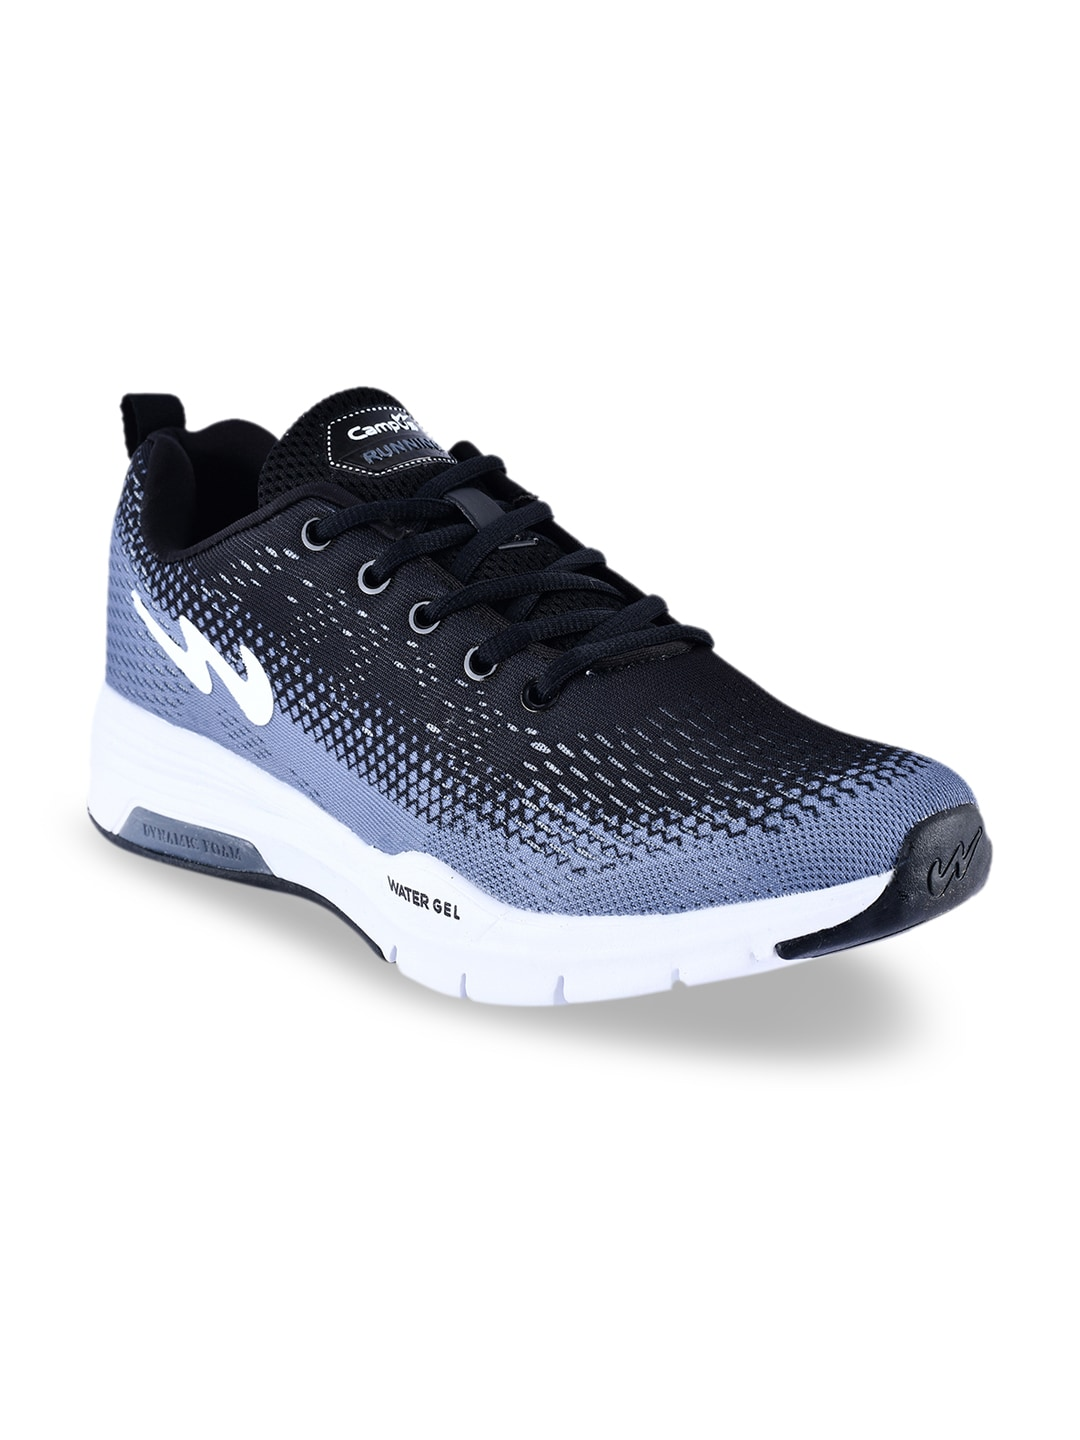 1ff94773d3a2 Campus Shoes - Buy Campus Shoes Online in India